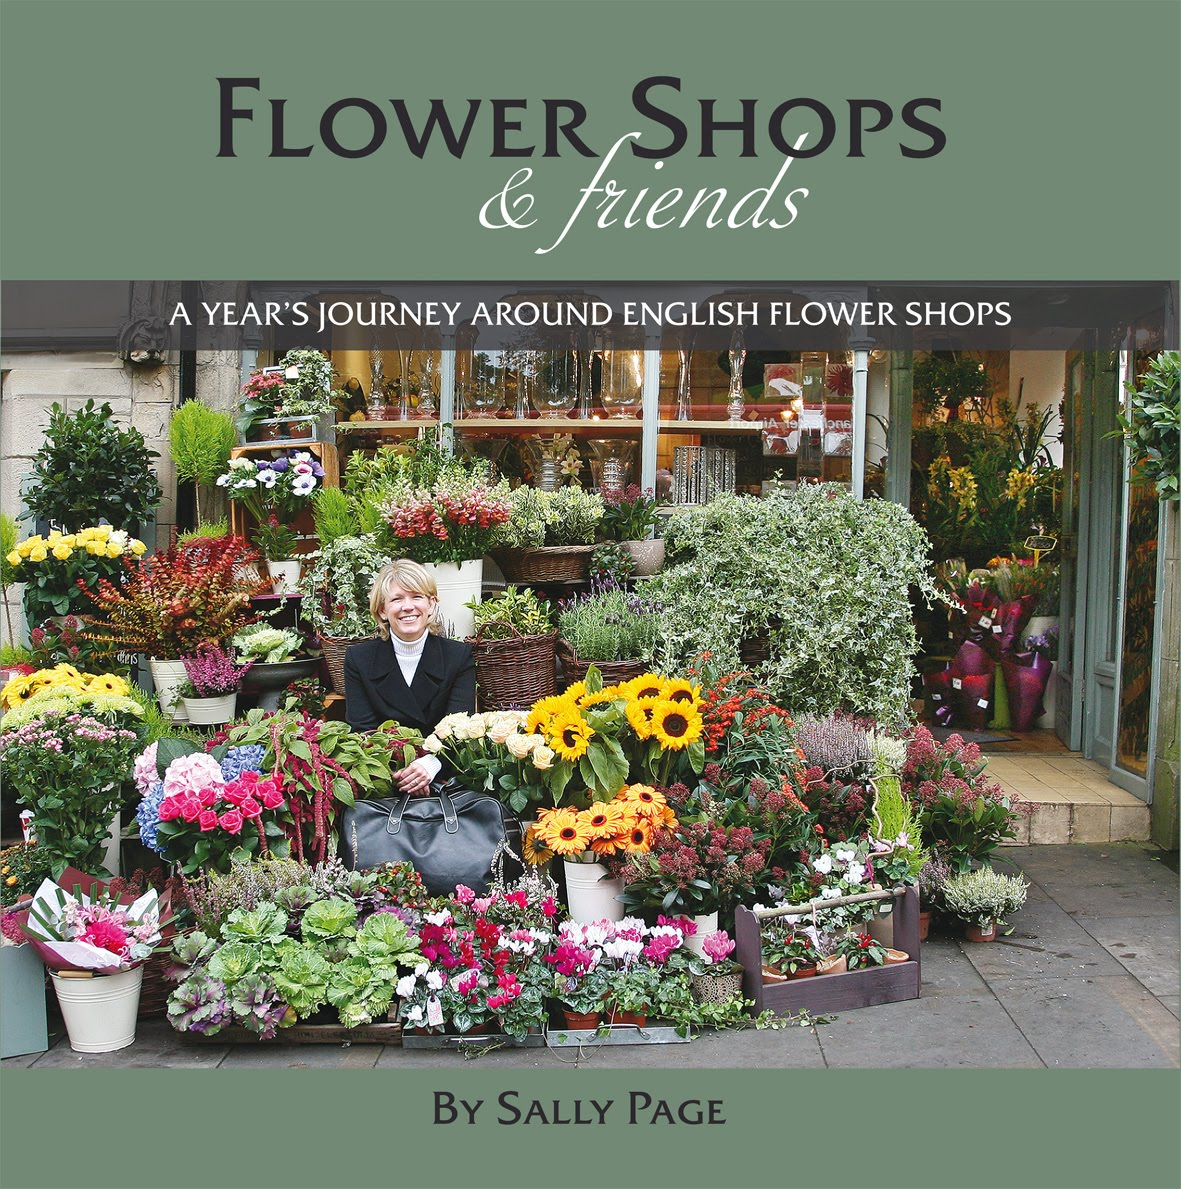 Flower Shop Stories And the Winner is Ted Martin Flowers